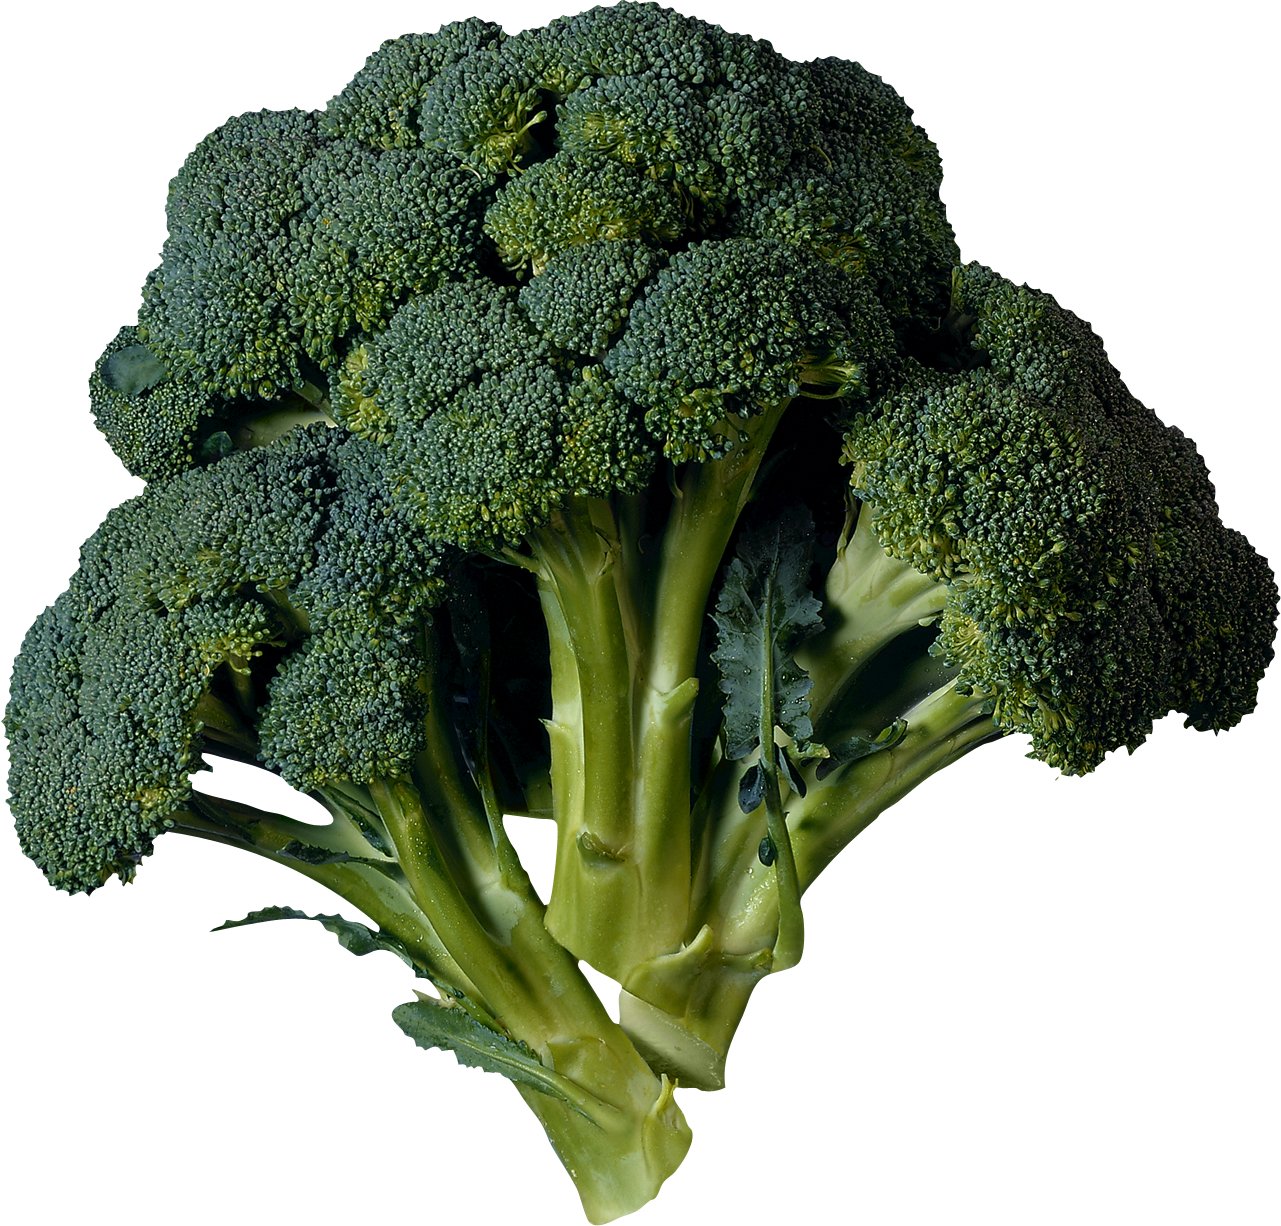 Broccoli PNG image - Broccoli PNG